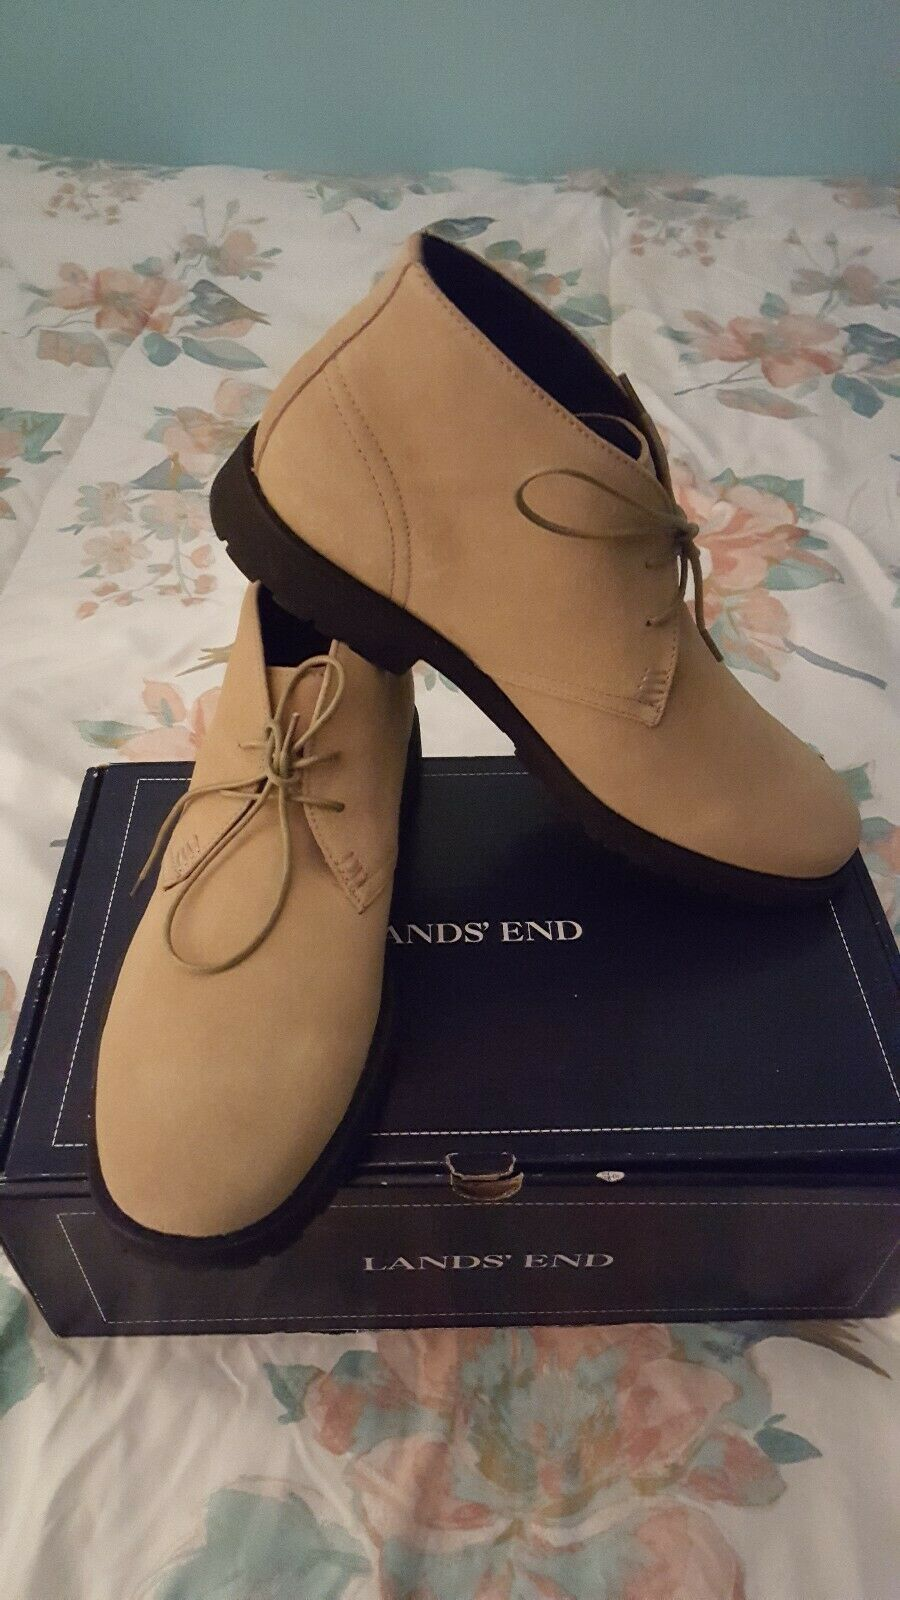 Lands' End Men's Sz 10 1 2 M Beige Chukka Boots - New Old Stock in Box - Rare